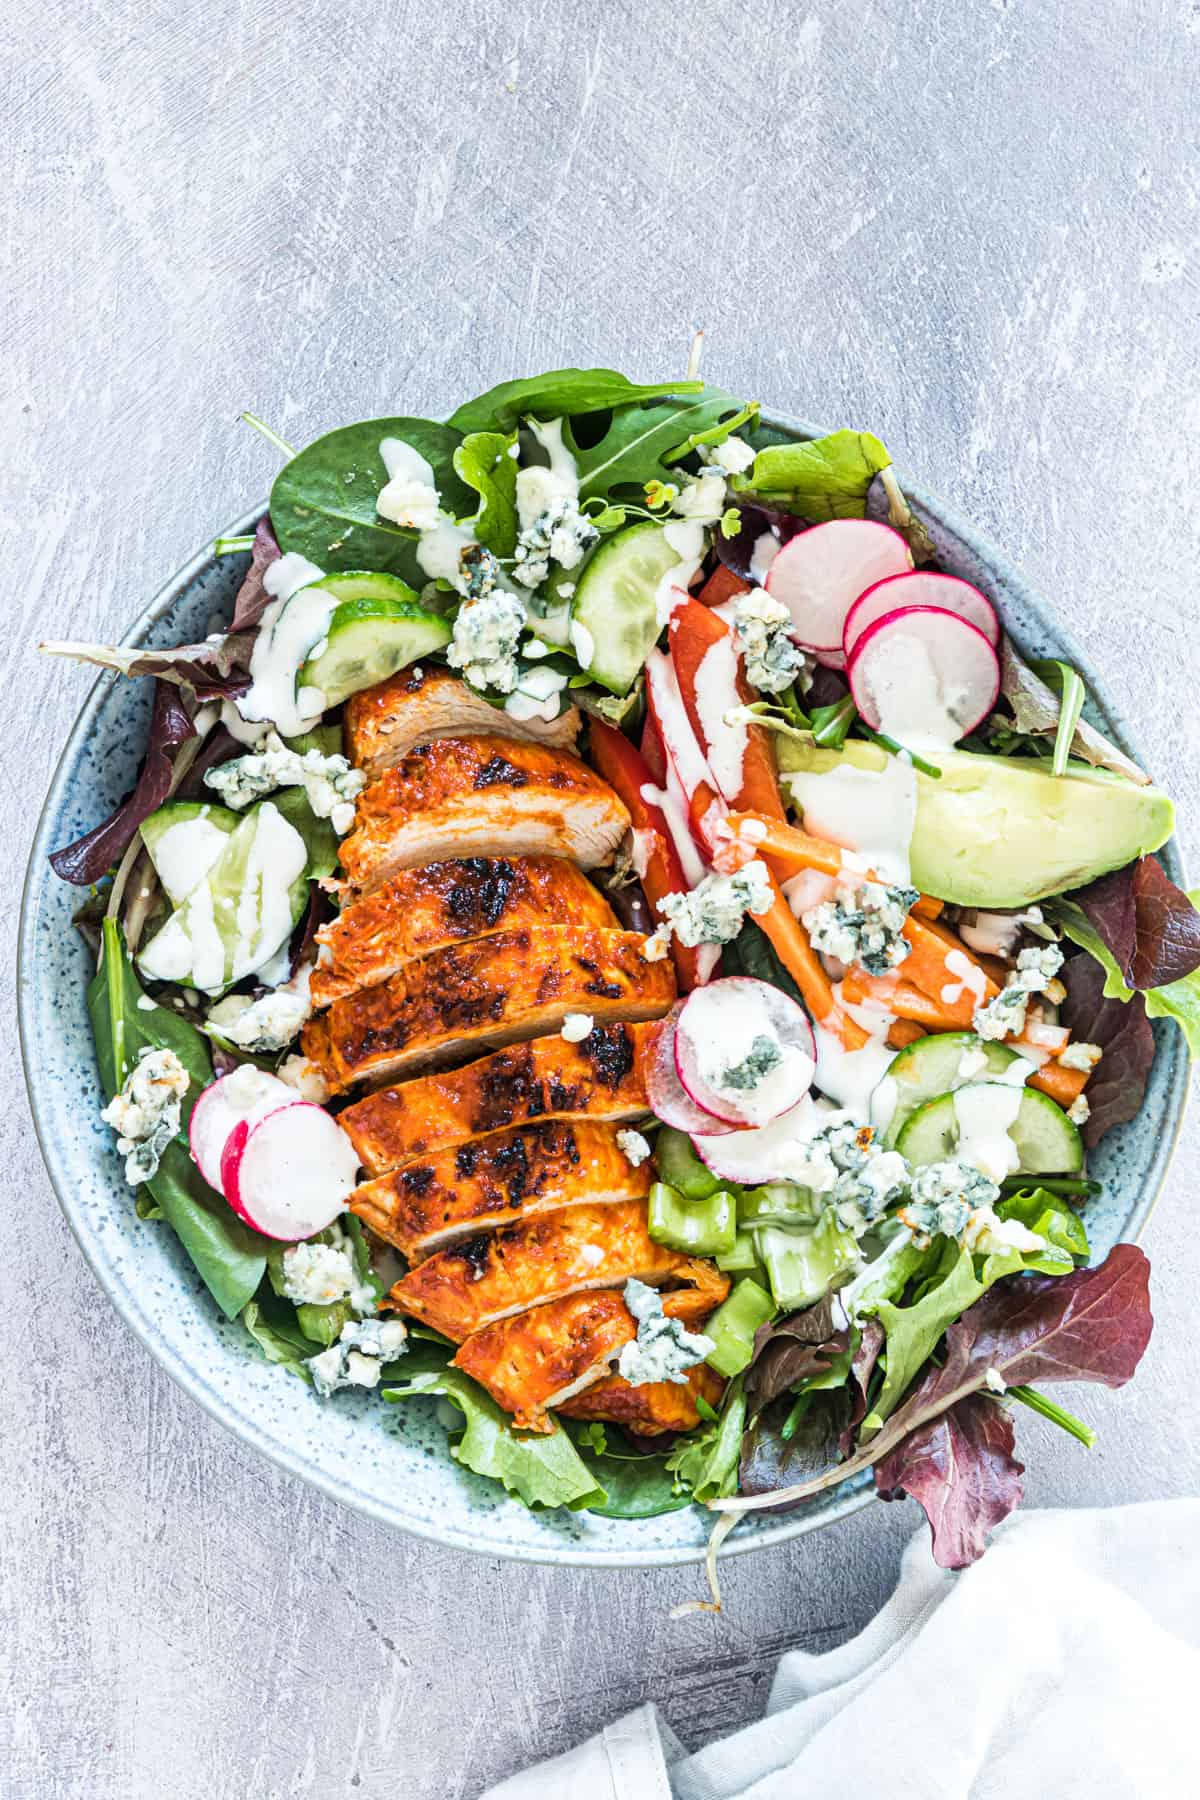 the completed buffalo chicken salad recipe